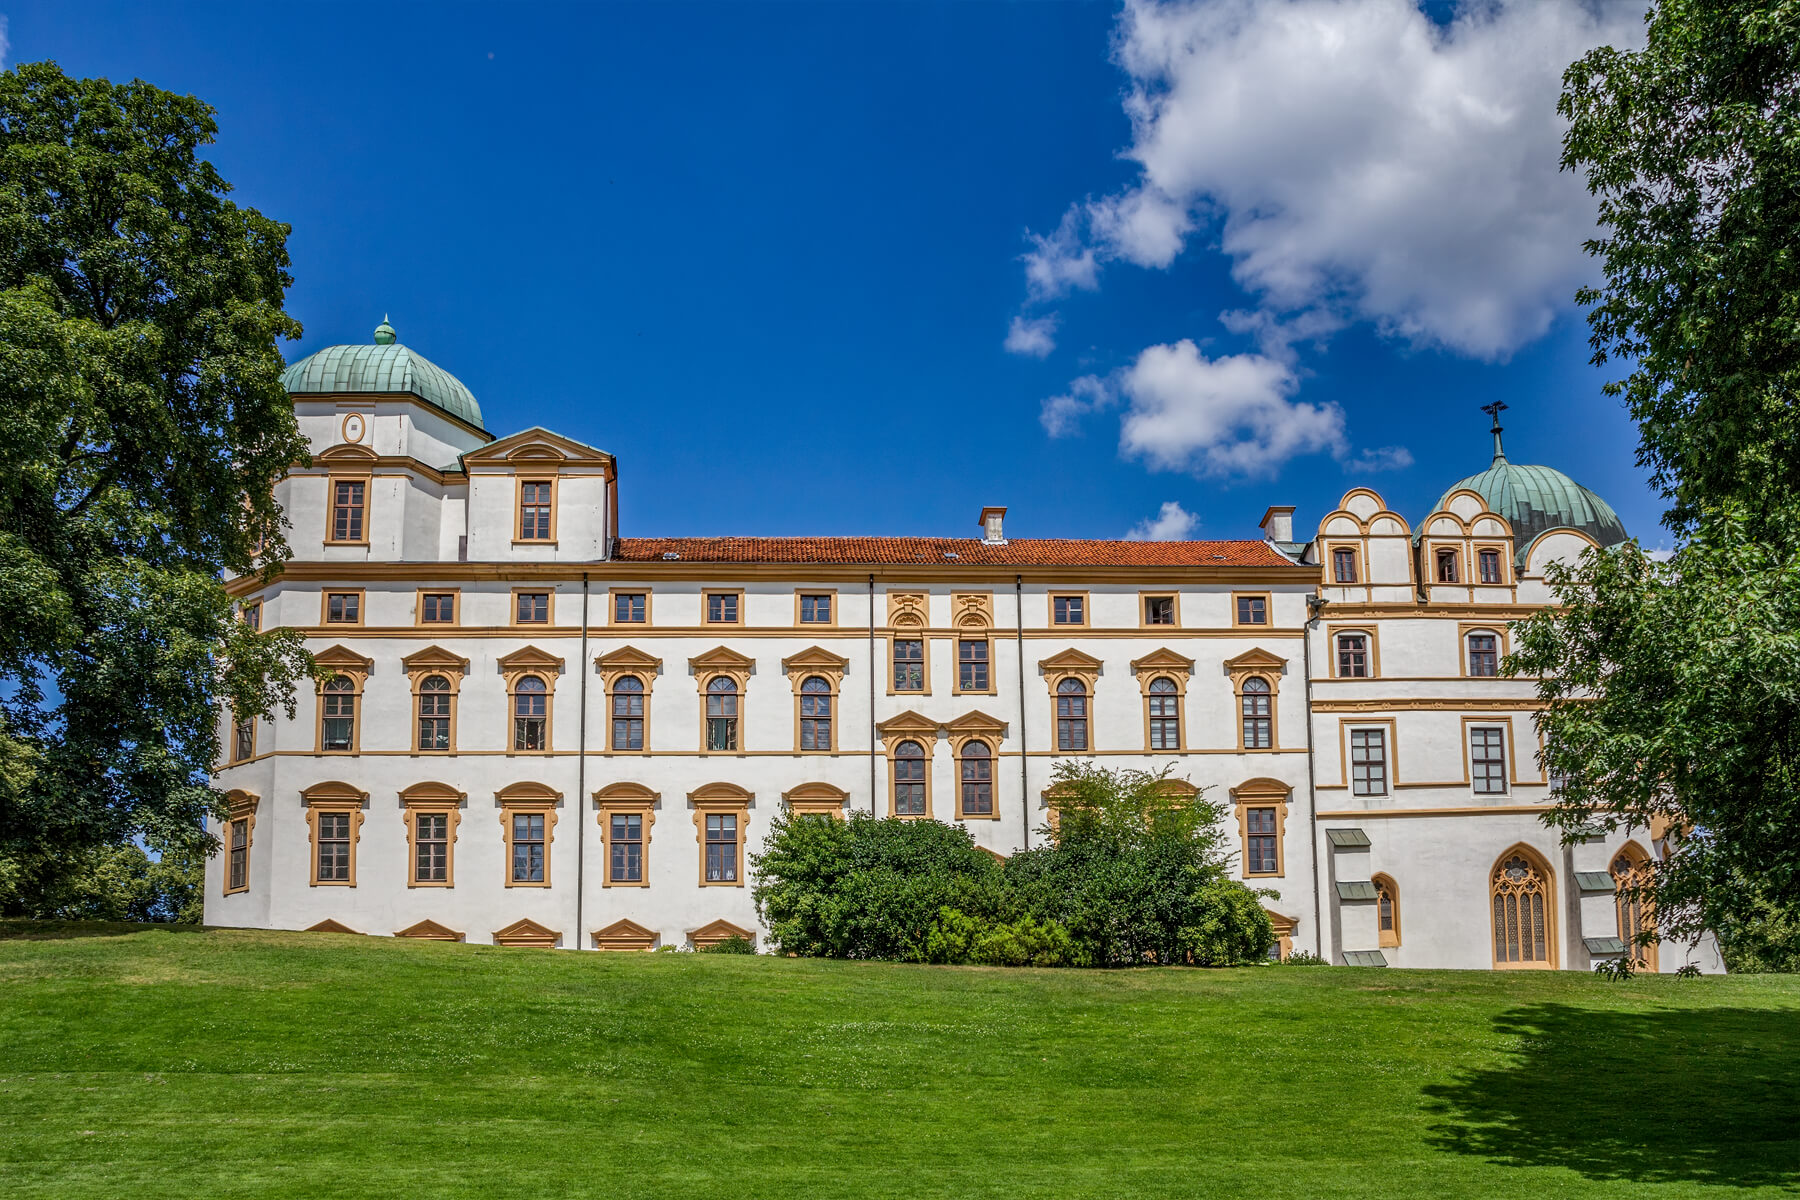 Schloss Celle (south view), Germany